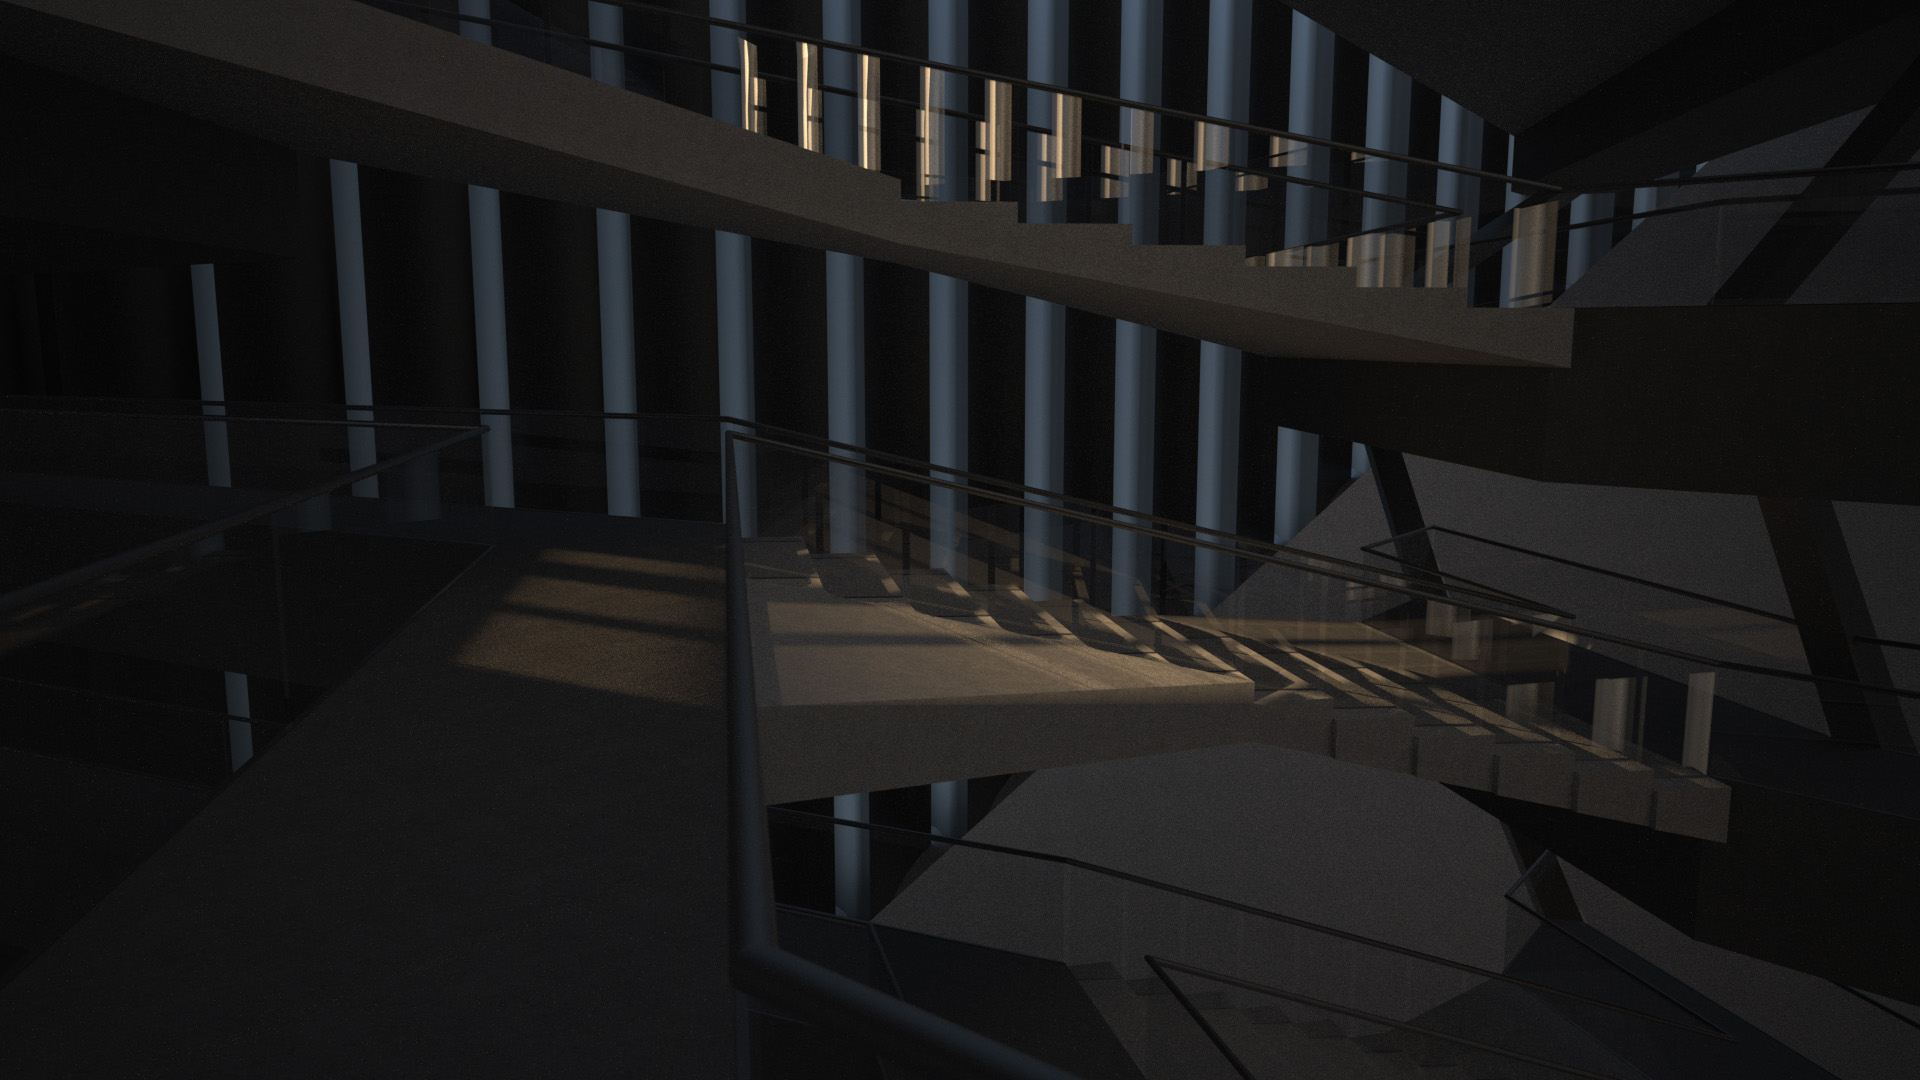 At 4° the sunlight rakes across aligned stair planes.